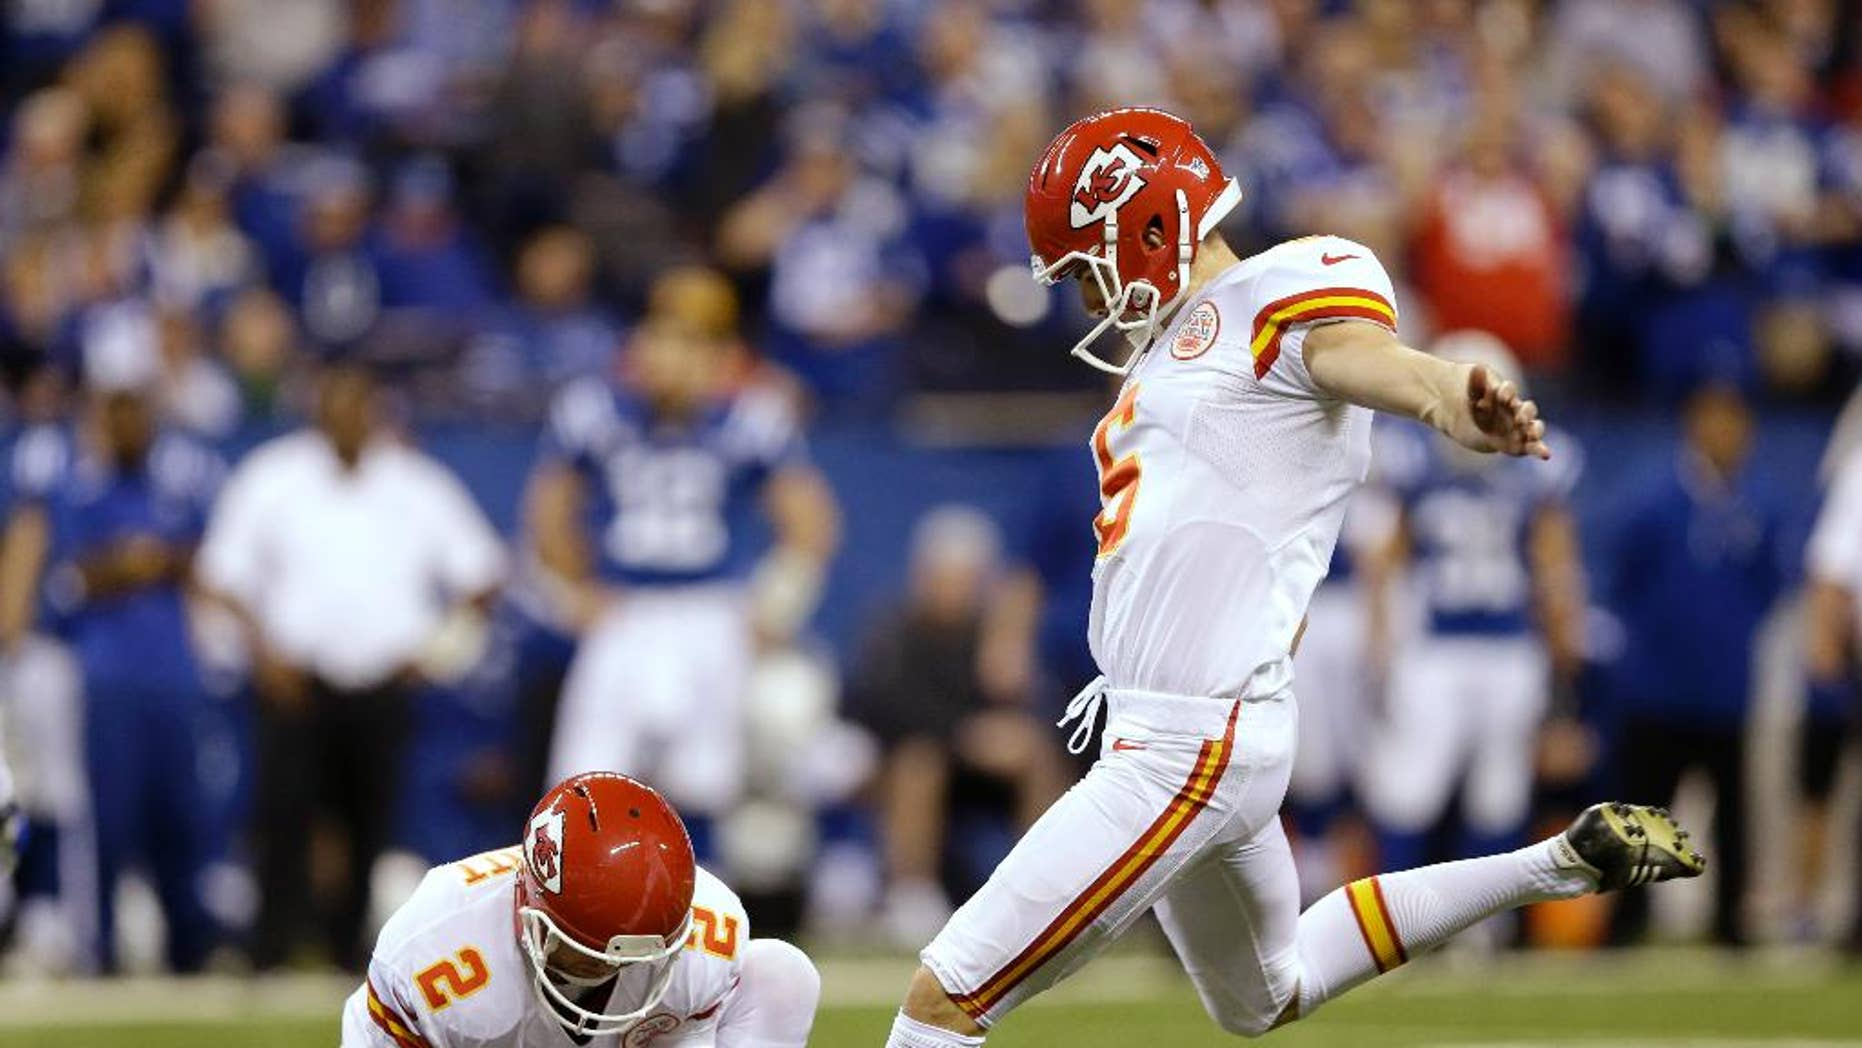 """FILE - In this Jan. 4, 2014, file photo, Kansas City Chiefs' Ryan Succop (6) kicks 42-yard field goal against the Indianapolis Colts during the second half of an NFL wild-card playoff football game in Indianapolis. Veteran kicker Succop has agreed to a one-year deal with the Tennessee Titans who chose to go with experience rather than an undrafted rookie. Agent Joel Turner said Monday, Sept. 1, 2014,  that Succop is happy with a """"very good opportunity in a fine organization."""" (AP Photo/Michael Conroy)"""